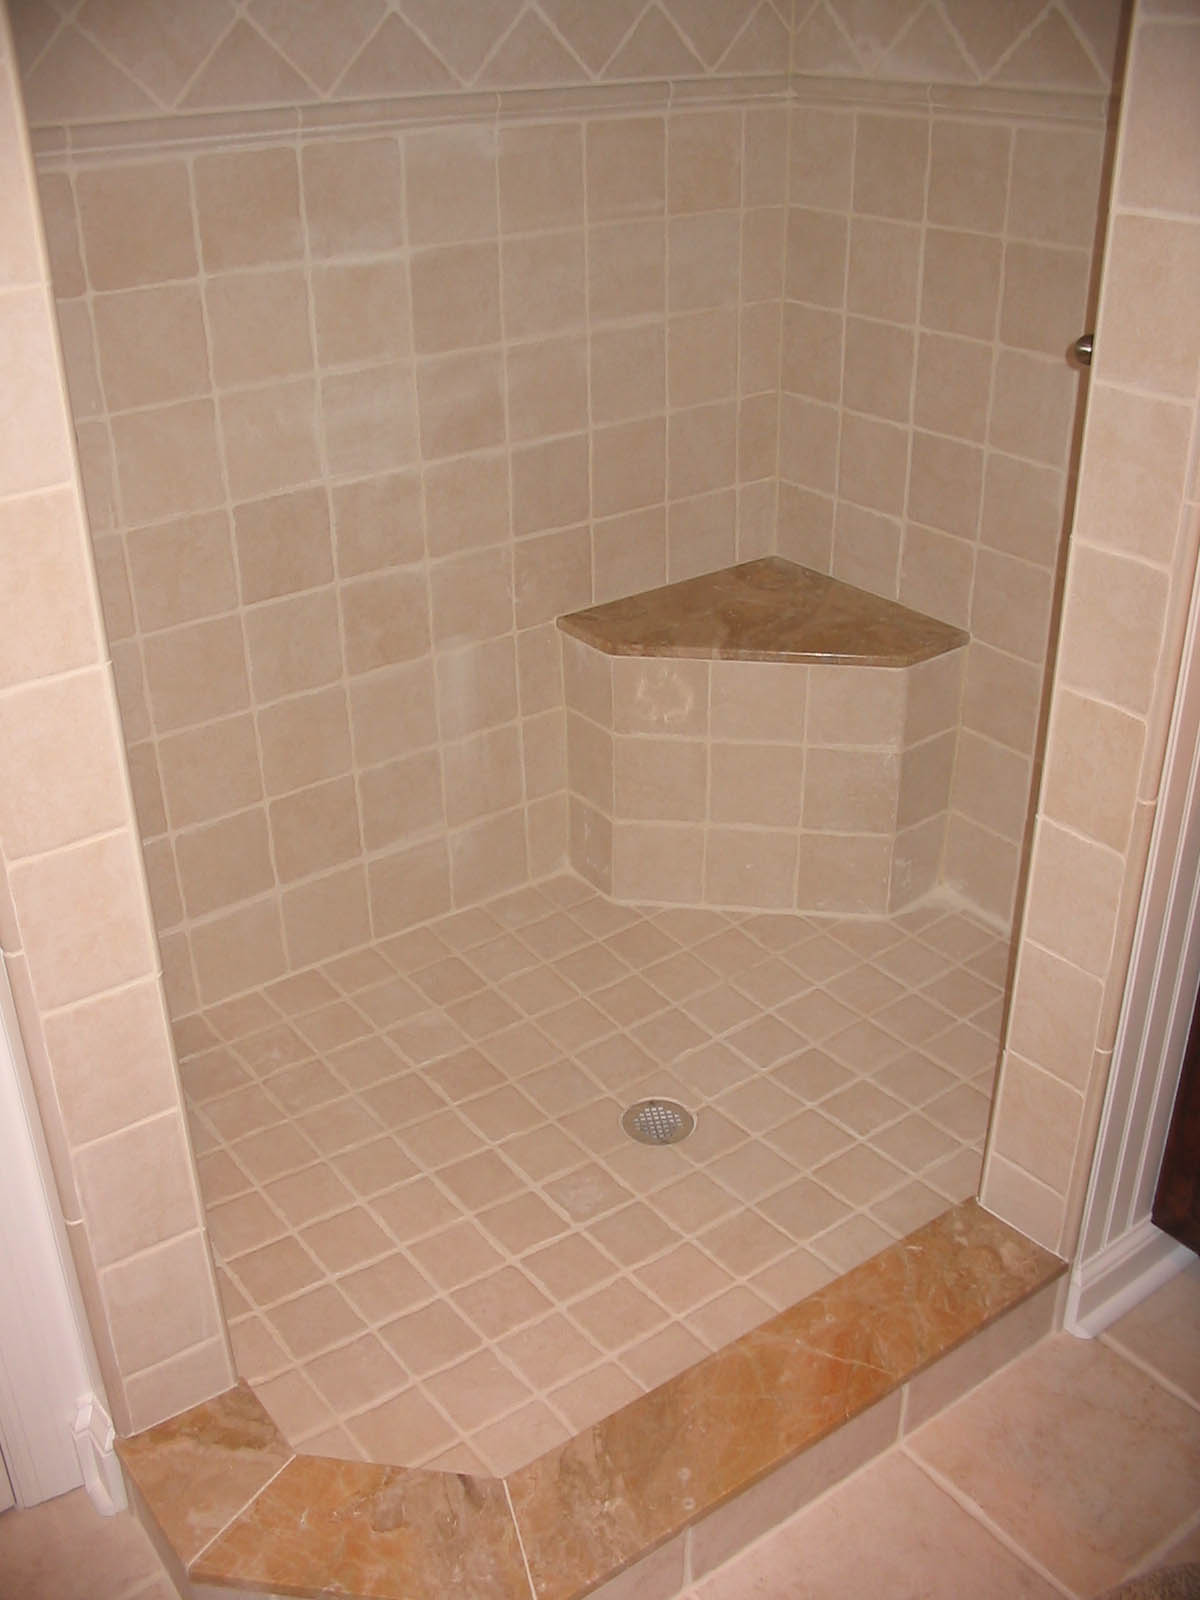 Bathroom tile designs Photo - 1